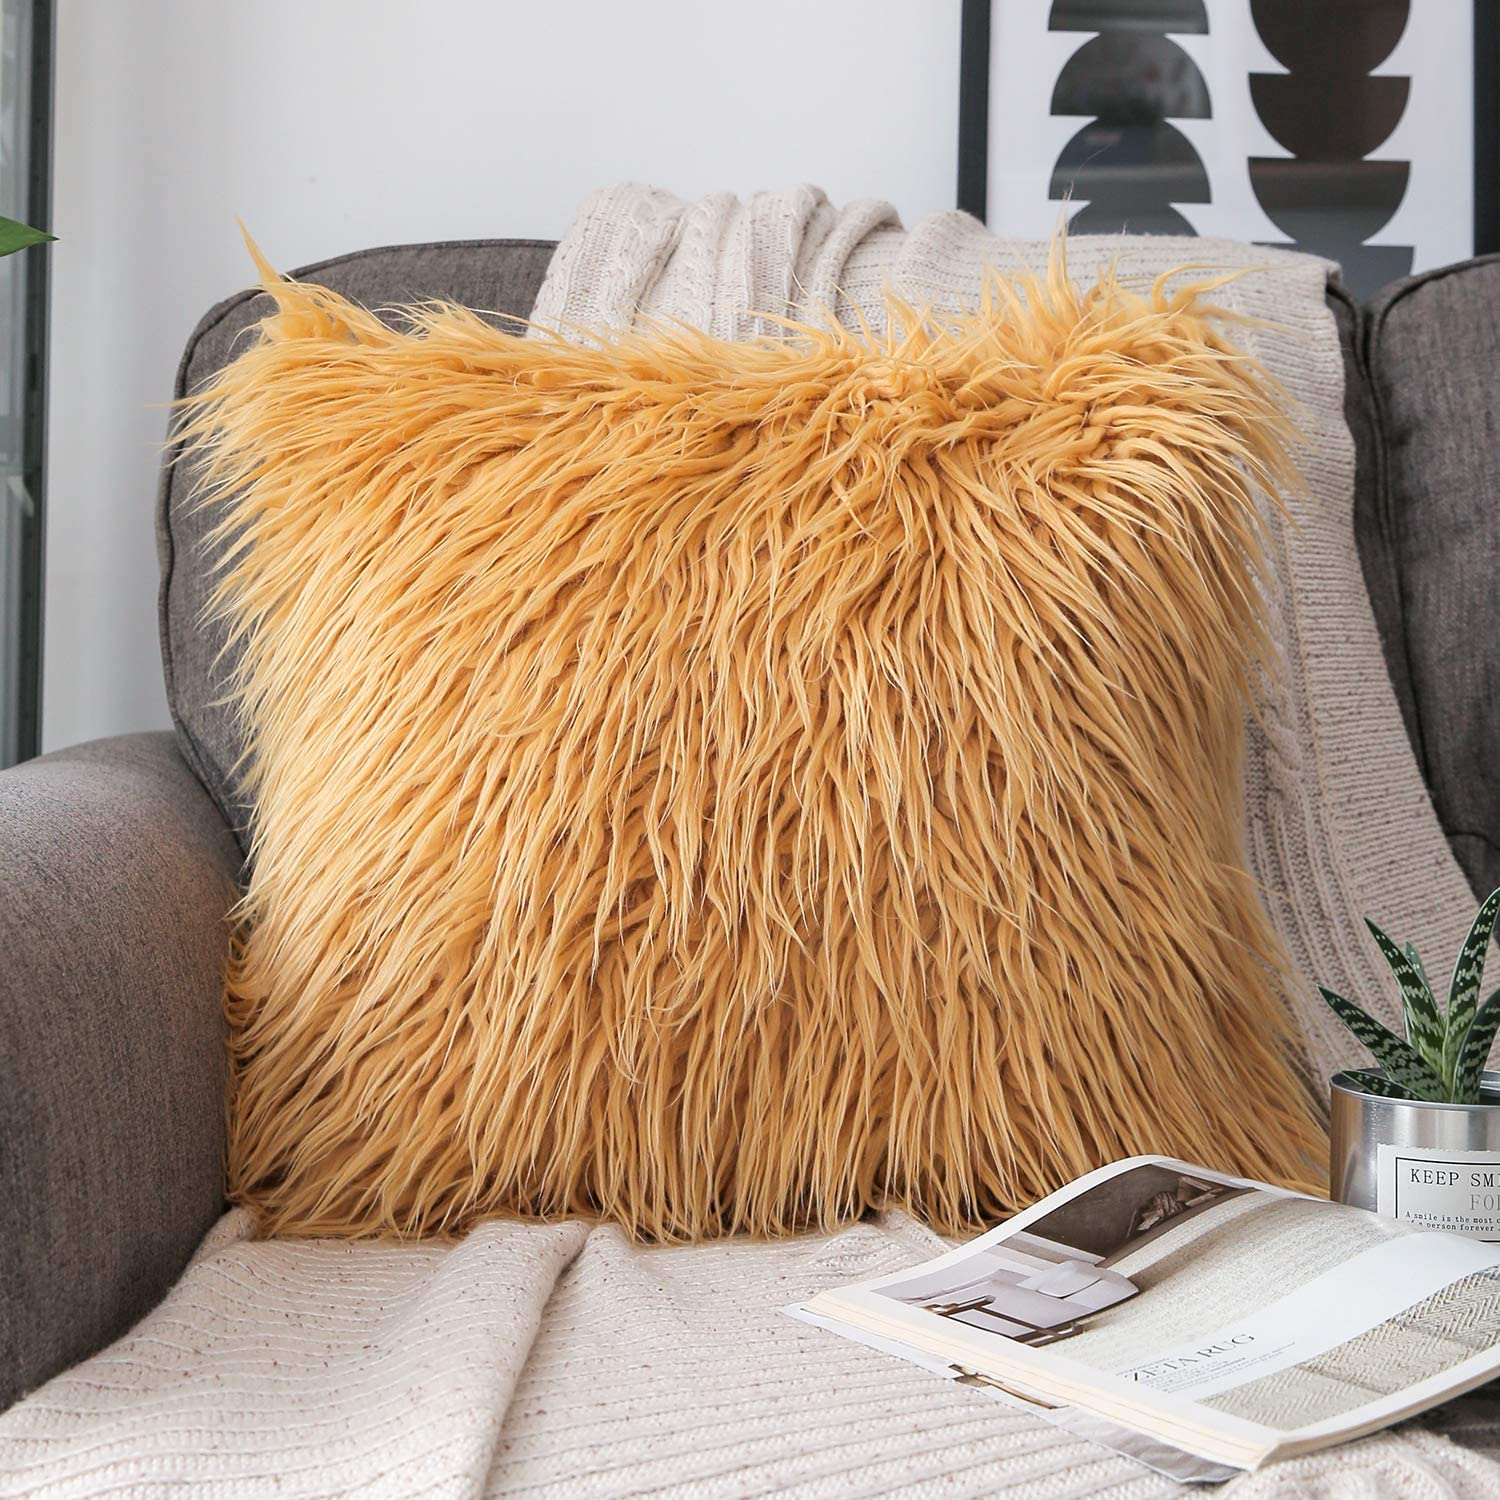 Phantoscope Luxury Series Throw Pillow Cover Faux Fur Mongolian Style Plush Cushion Case for Couch Bed and Chair, Ginger, 18 x 18 inches, 45 x 45 cm